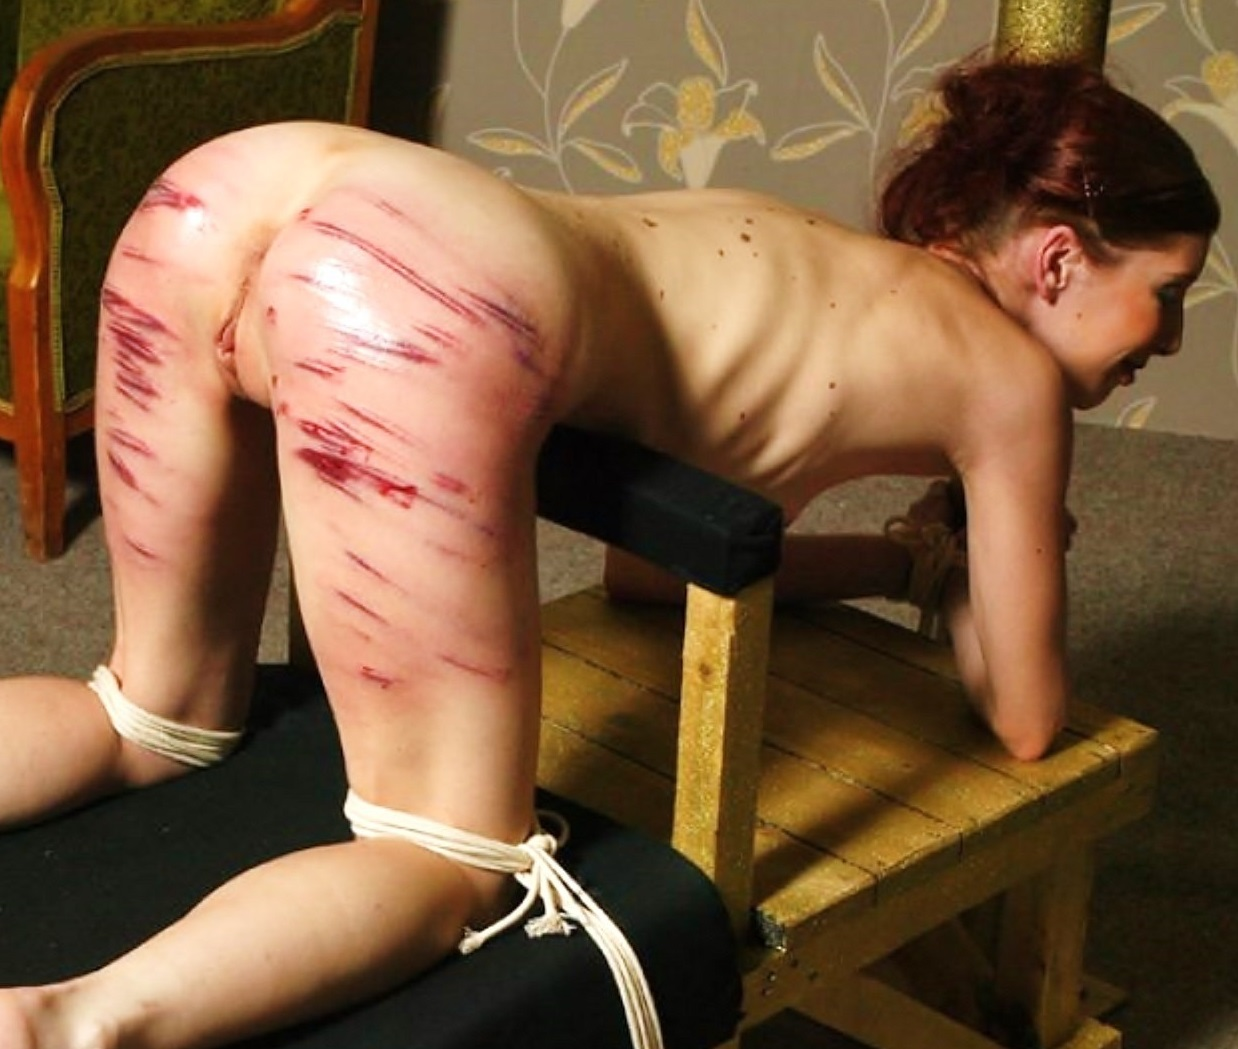 Naked girl hard spanked 13